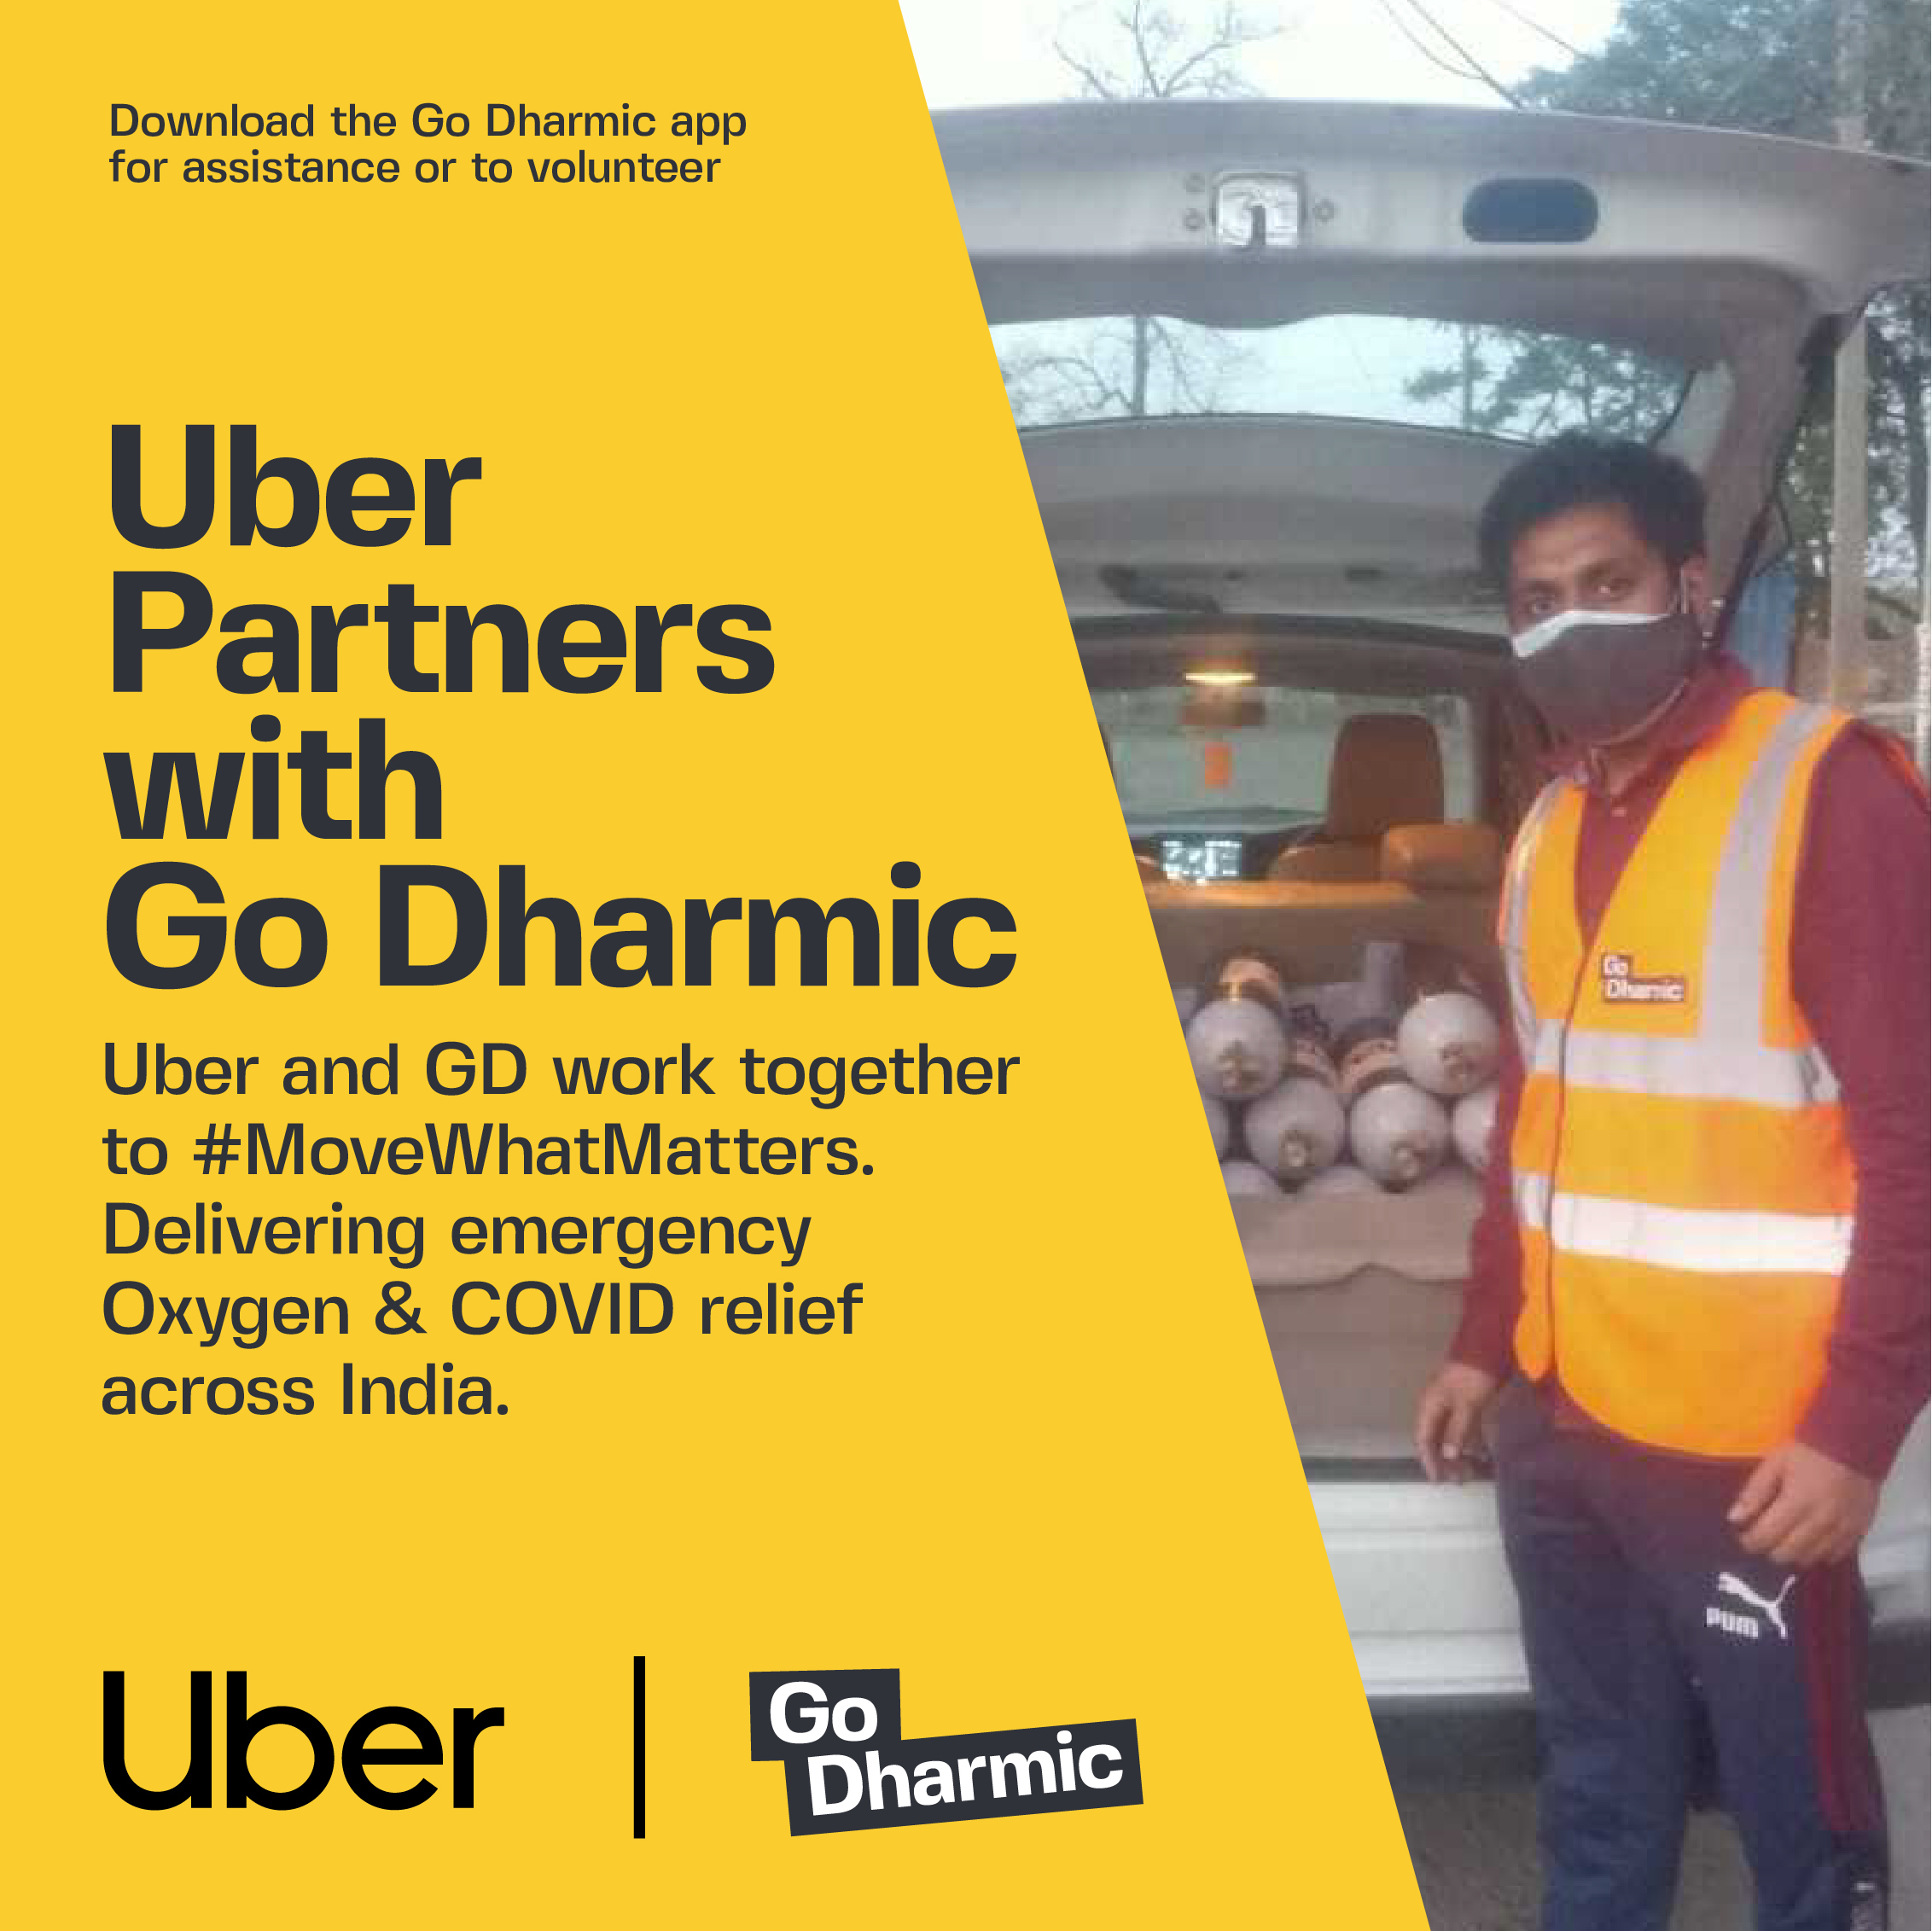 Uber Partners With Go Dharmic to #Movewhatmatters Providing Oxygen Relief Across India in Covid Crisis